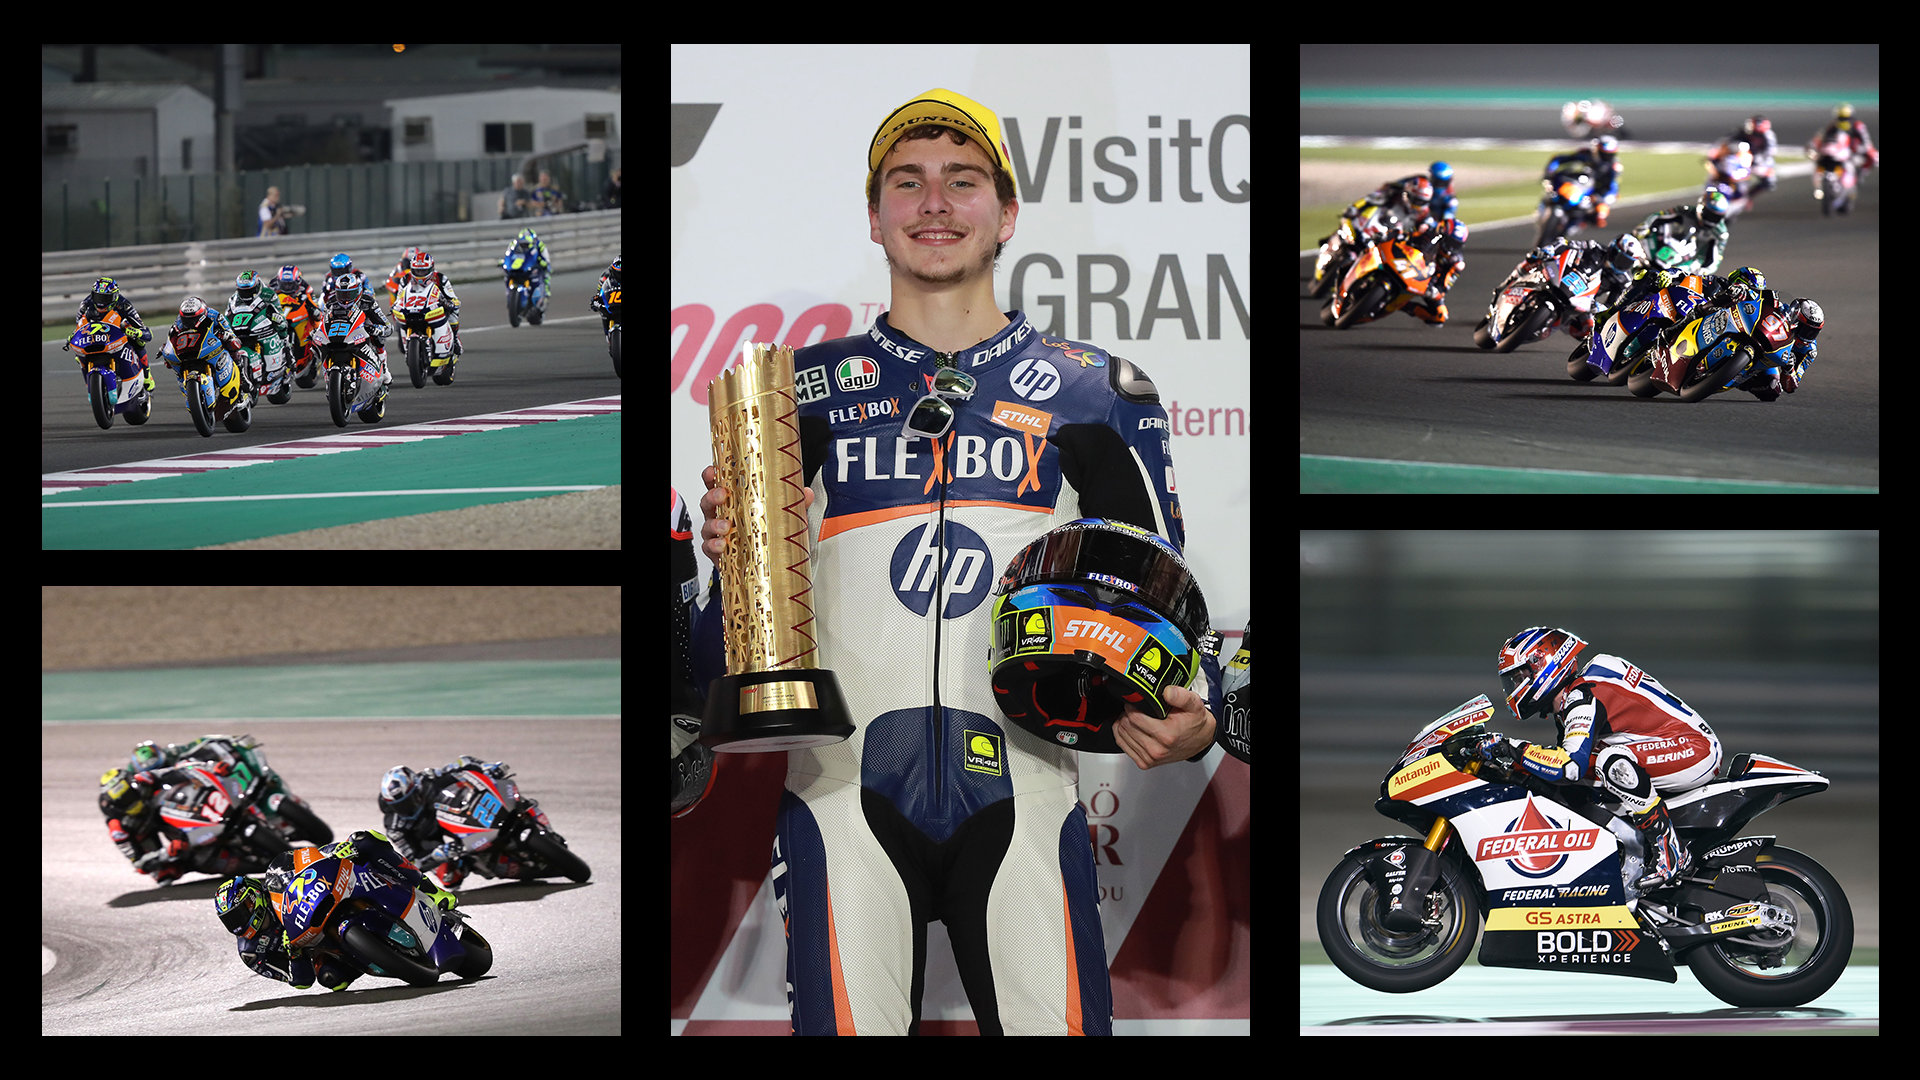 Moto2 Qatar 2019 Race highlights featuring race winner Lorenzo Baldassarri